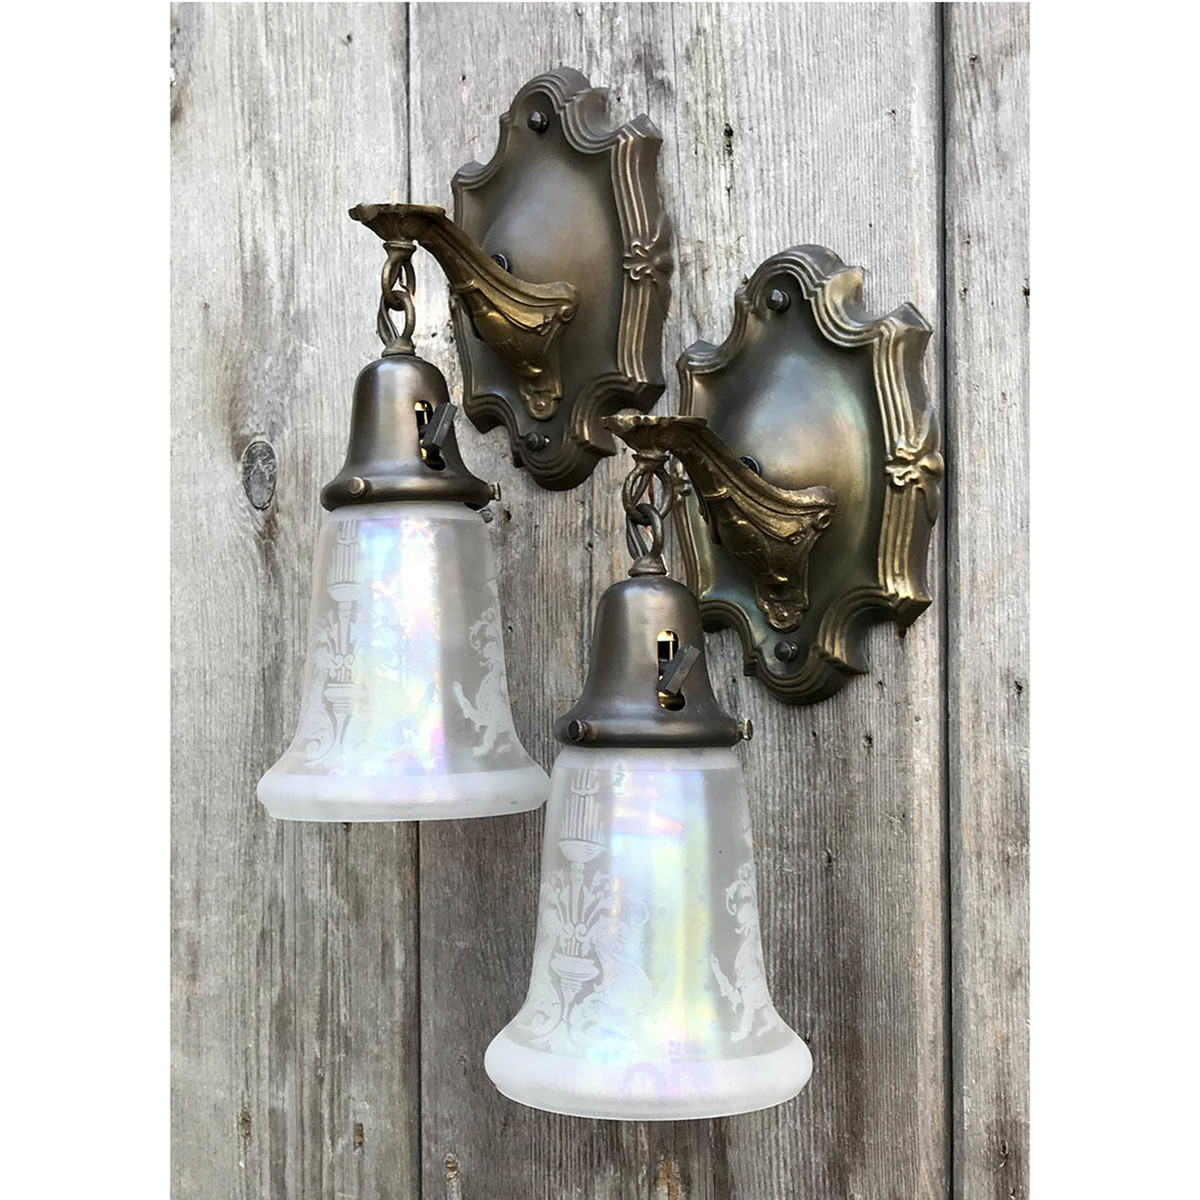 610026 - Pair of Antique Sconces with Griffin Shades